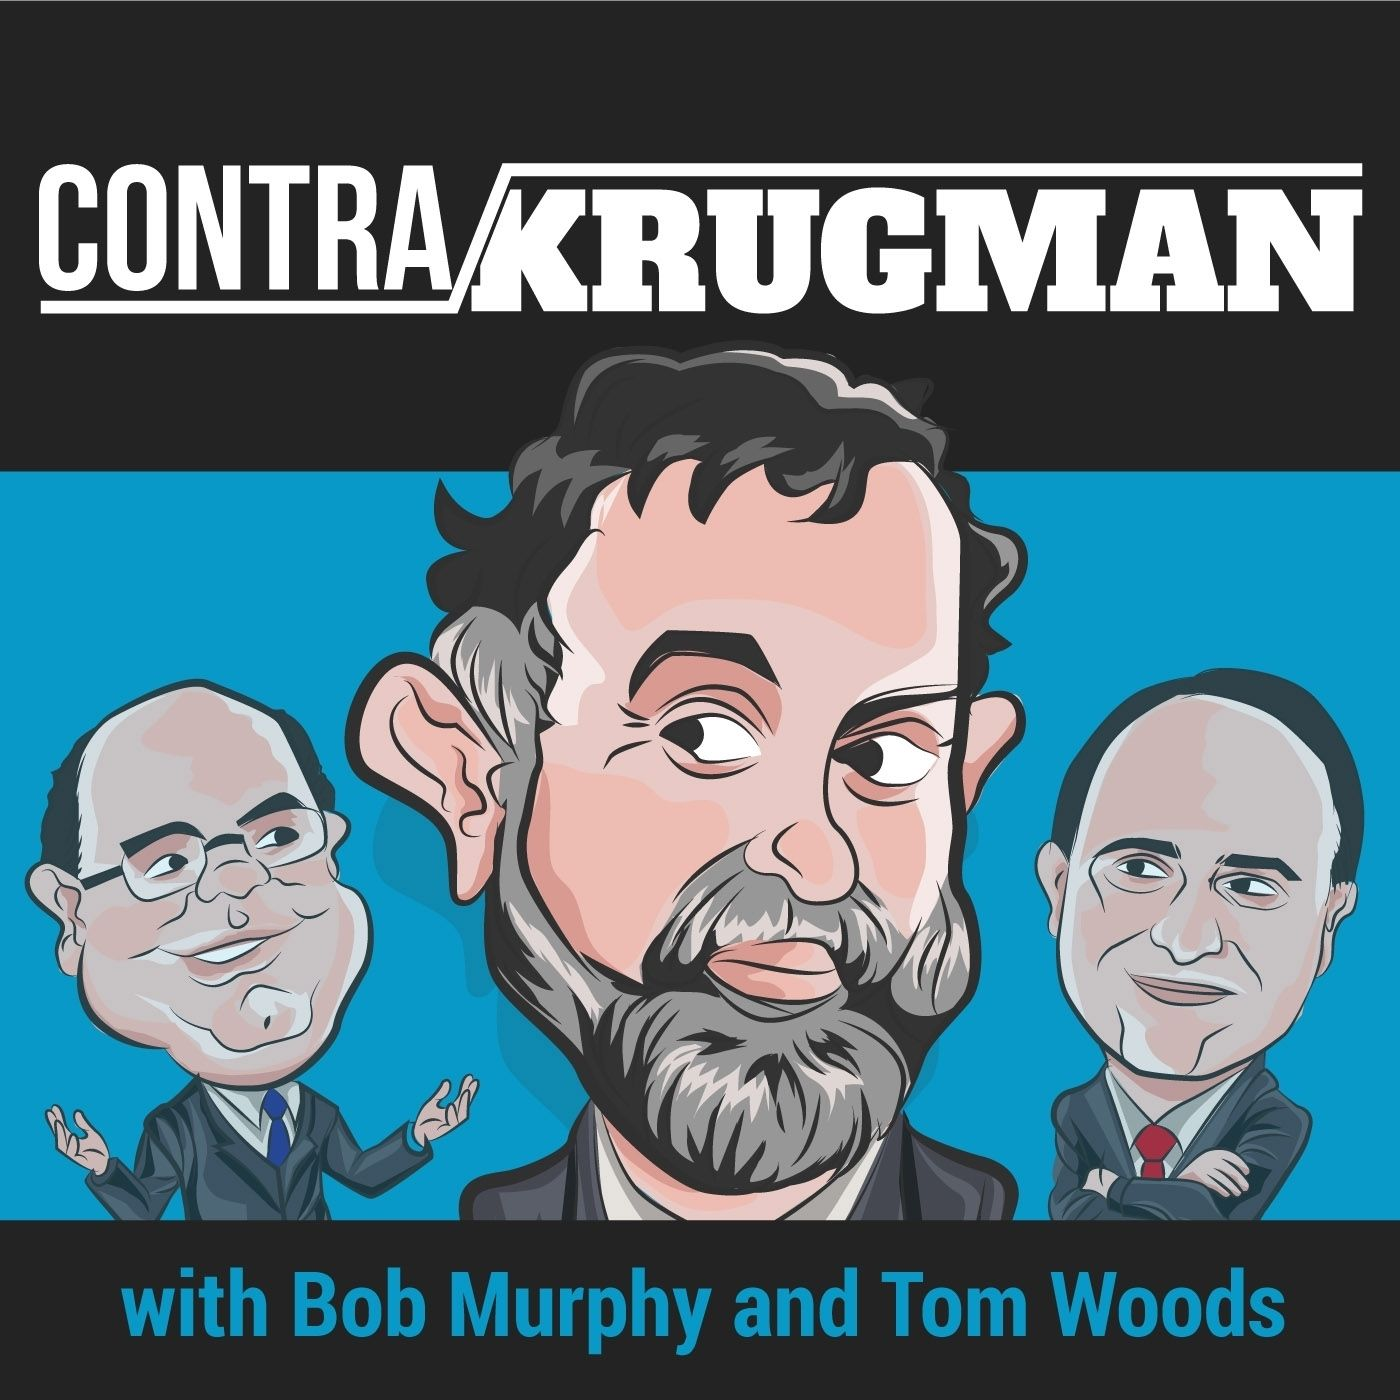 Heartland Newsfeed Radio Network: Contra Krugman (Week of August 19, 2019)